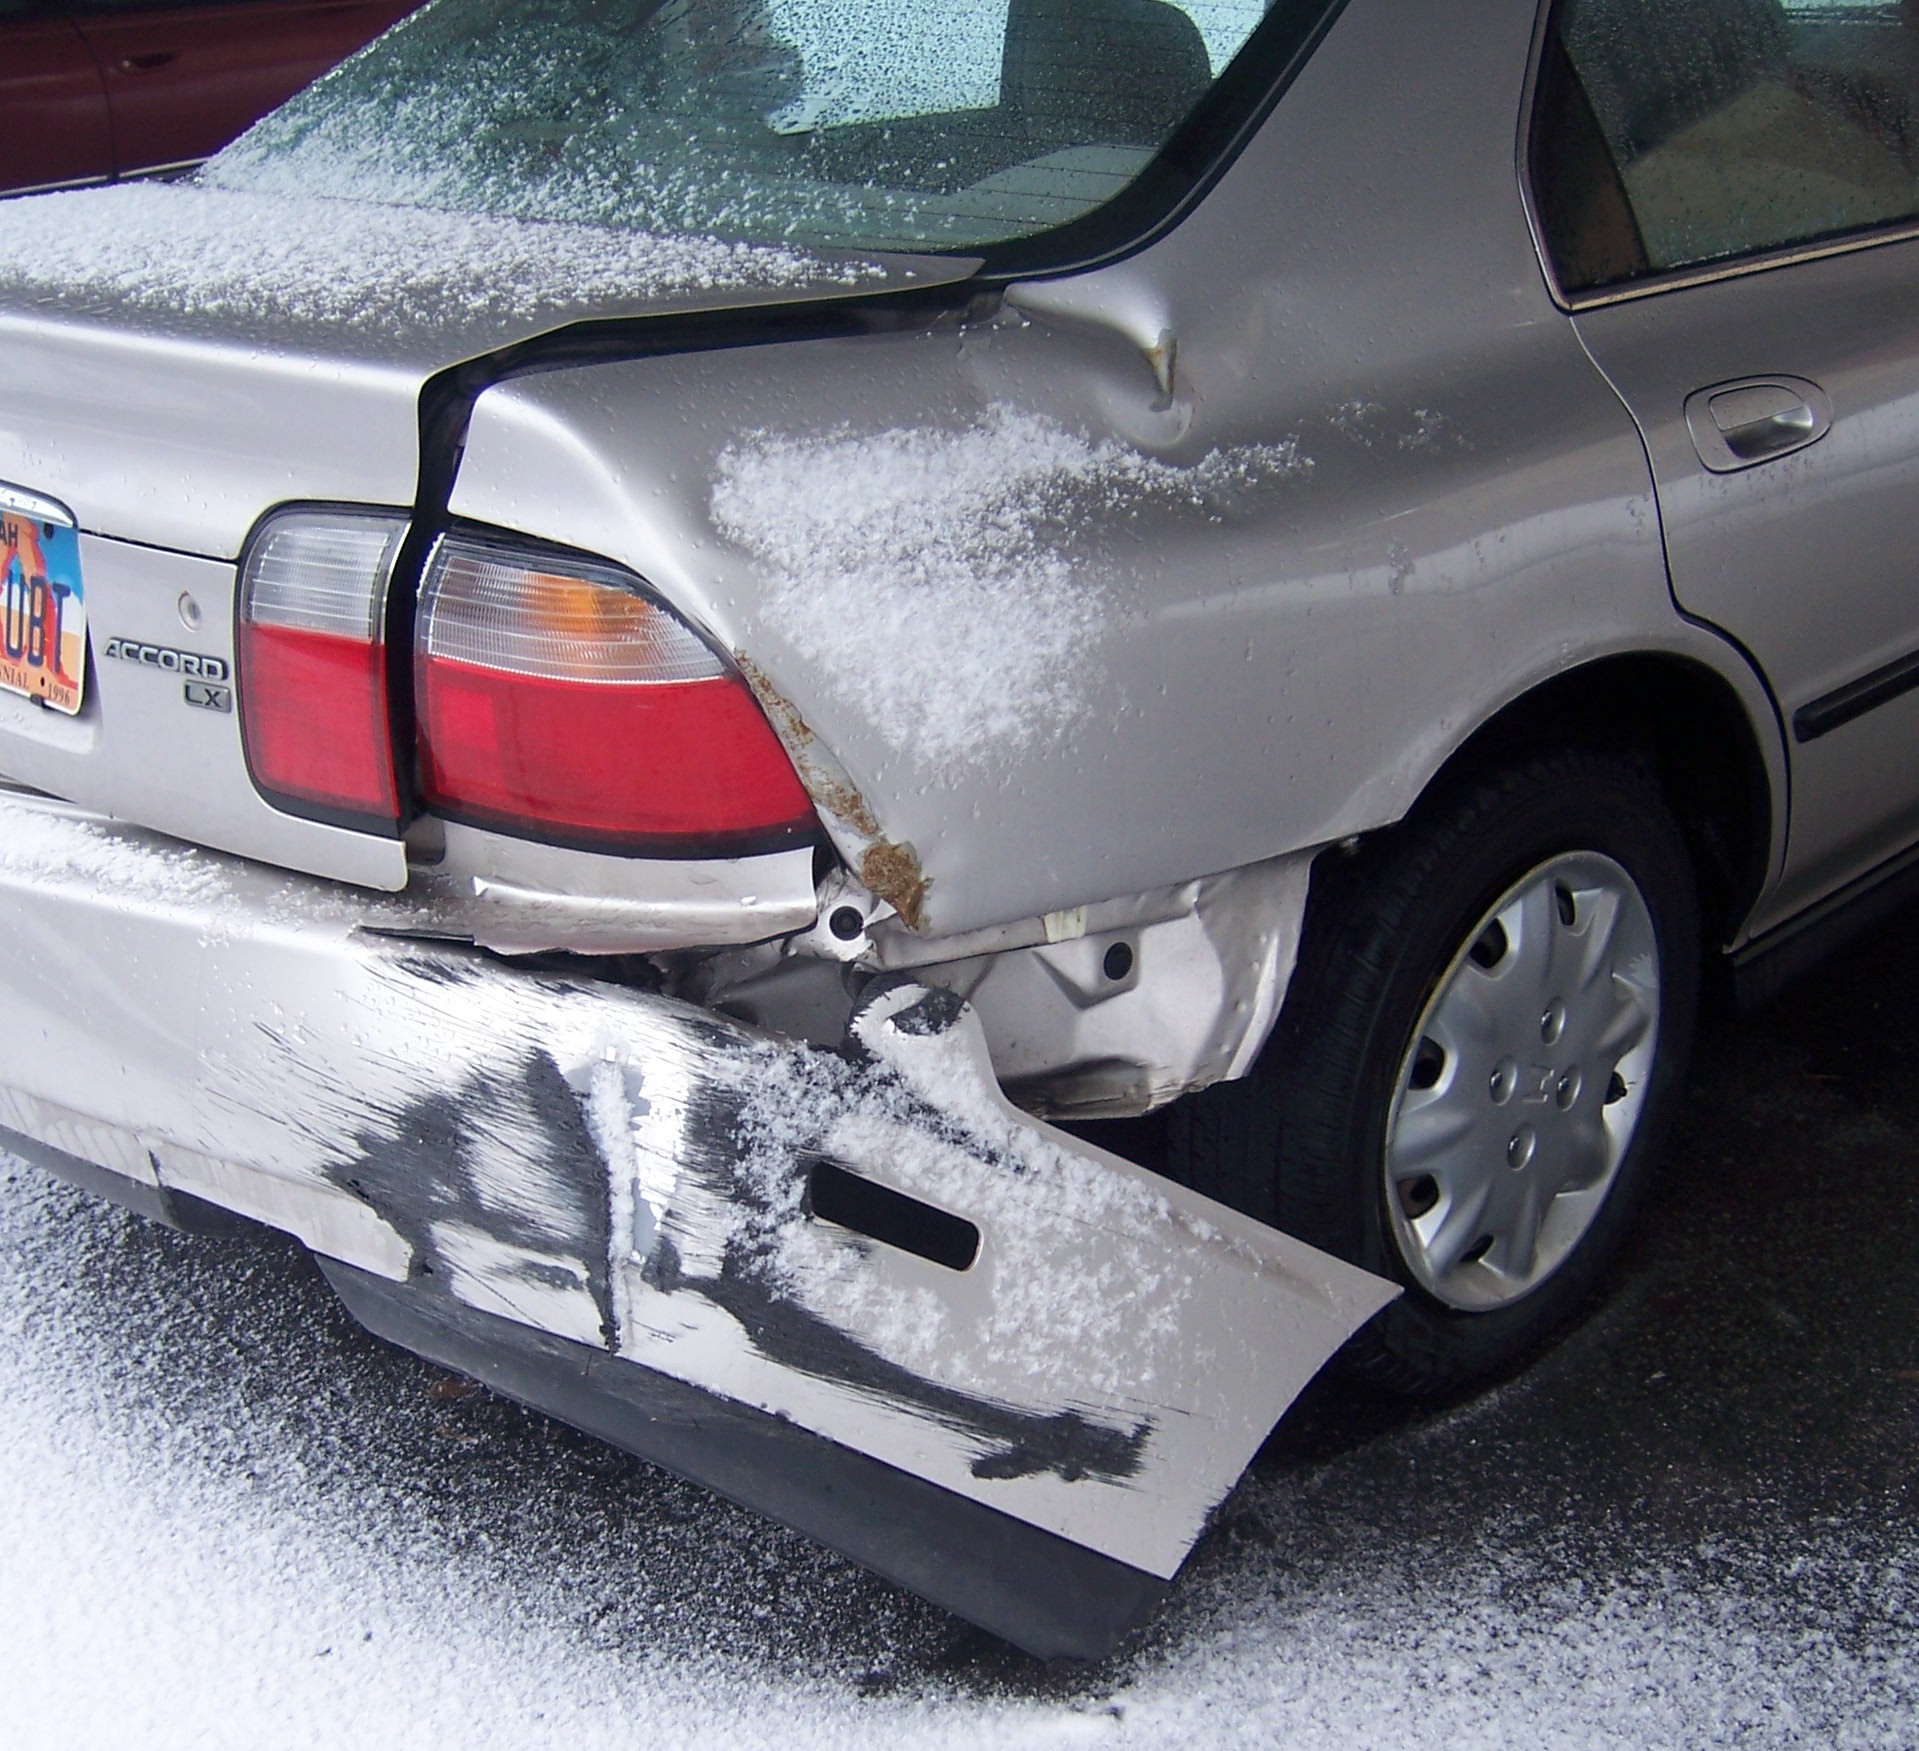 Is my vehicle safe to drive after a car accident